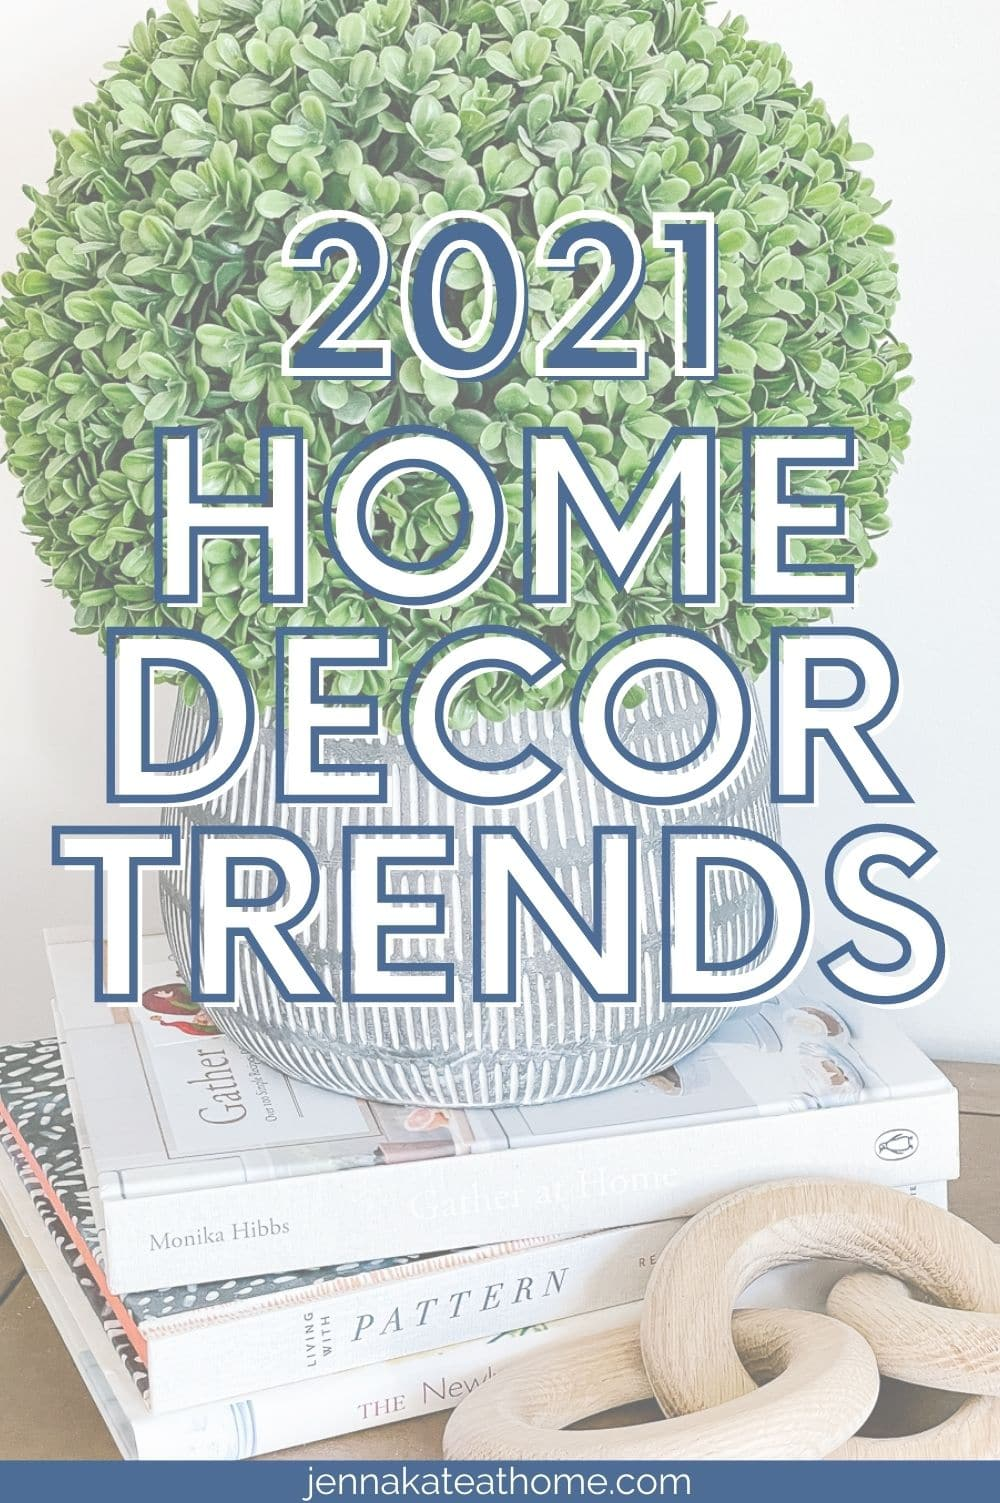 2021 home decor trends pin image with text overlay